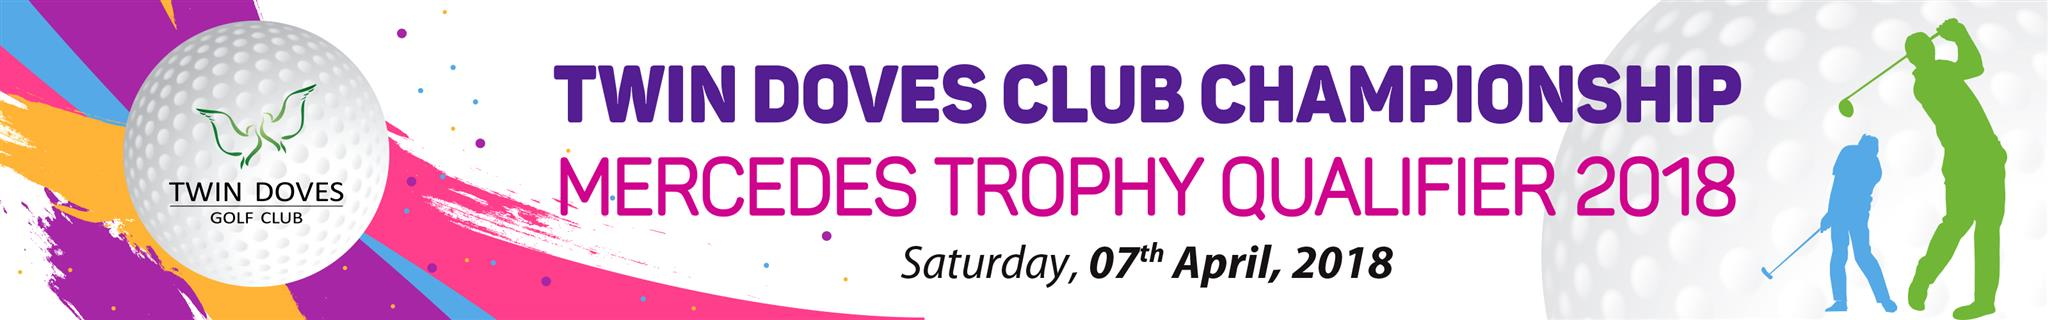 WELCOME ALL MEMBERS TO TWIN DOVES CLUB CHAMPIONSHIP 2018